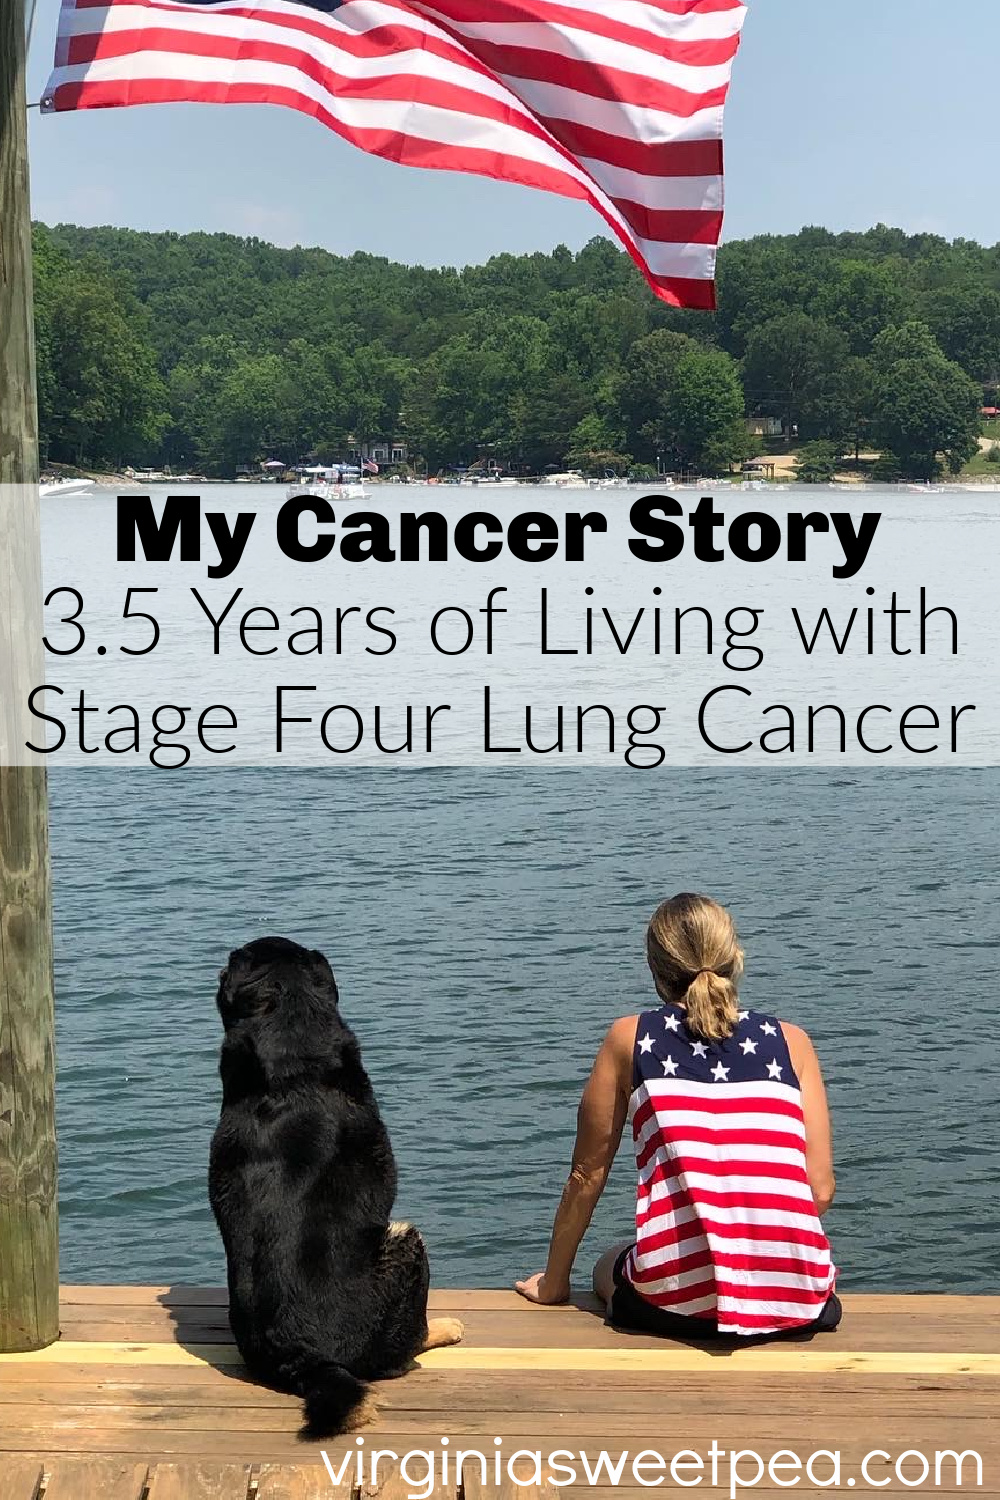 My Cancer Story - 3.5 Yeas of Living with Stage Four Lung Cancer #lungcancer #stagefourlungcancer #nonsmallcelllungcancer via @spaula